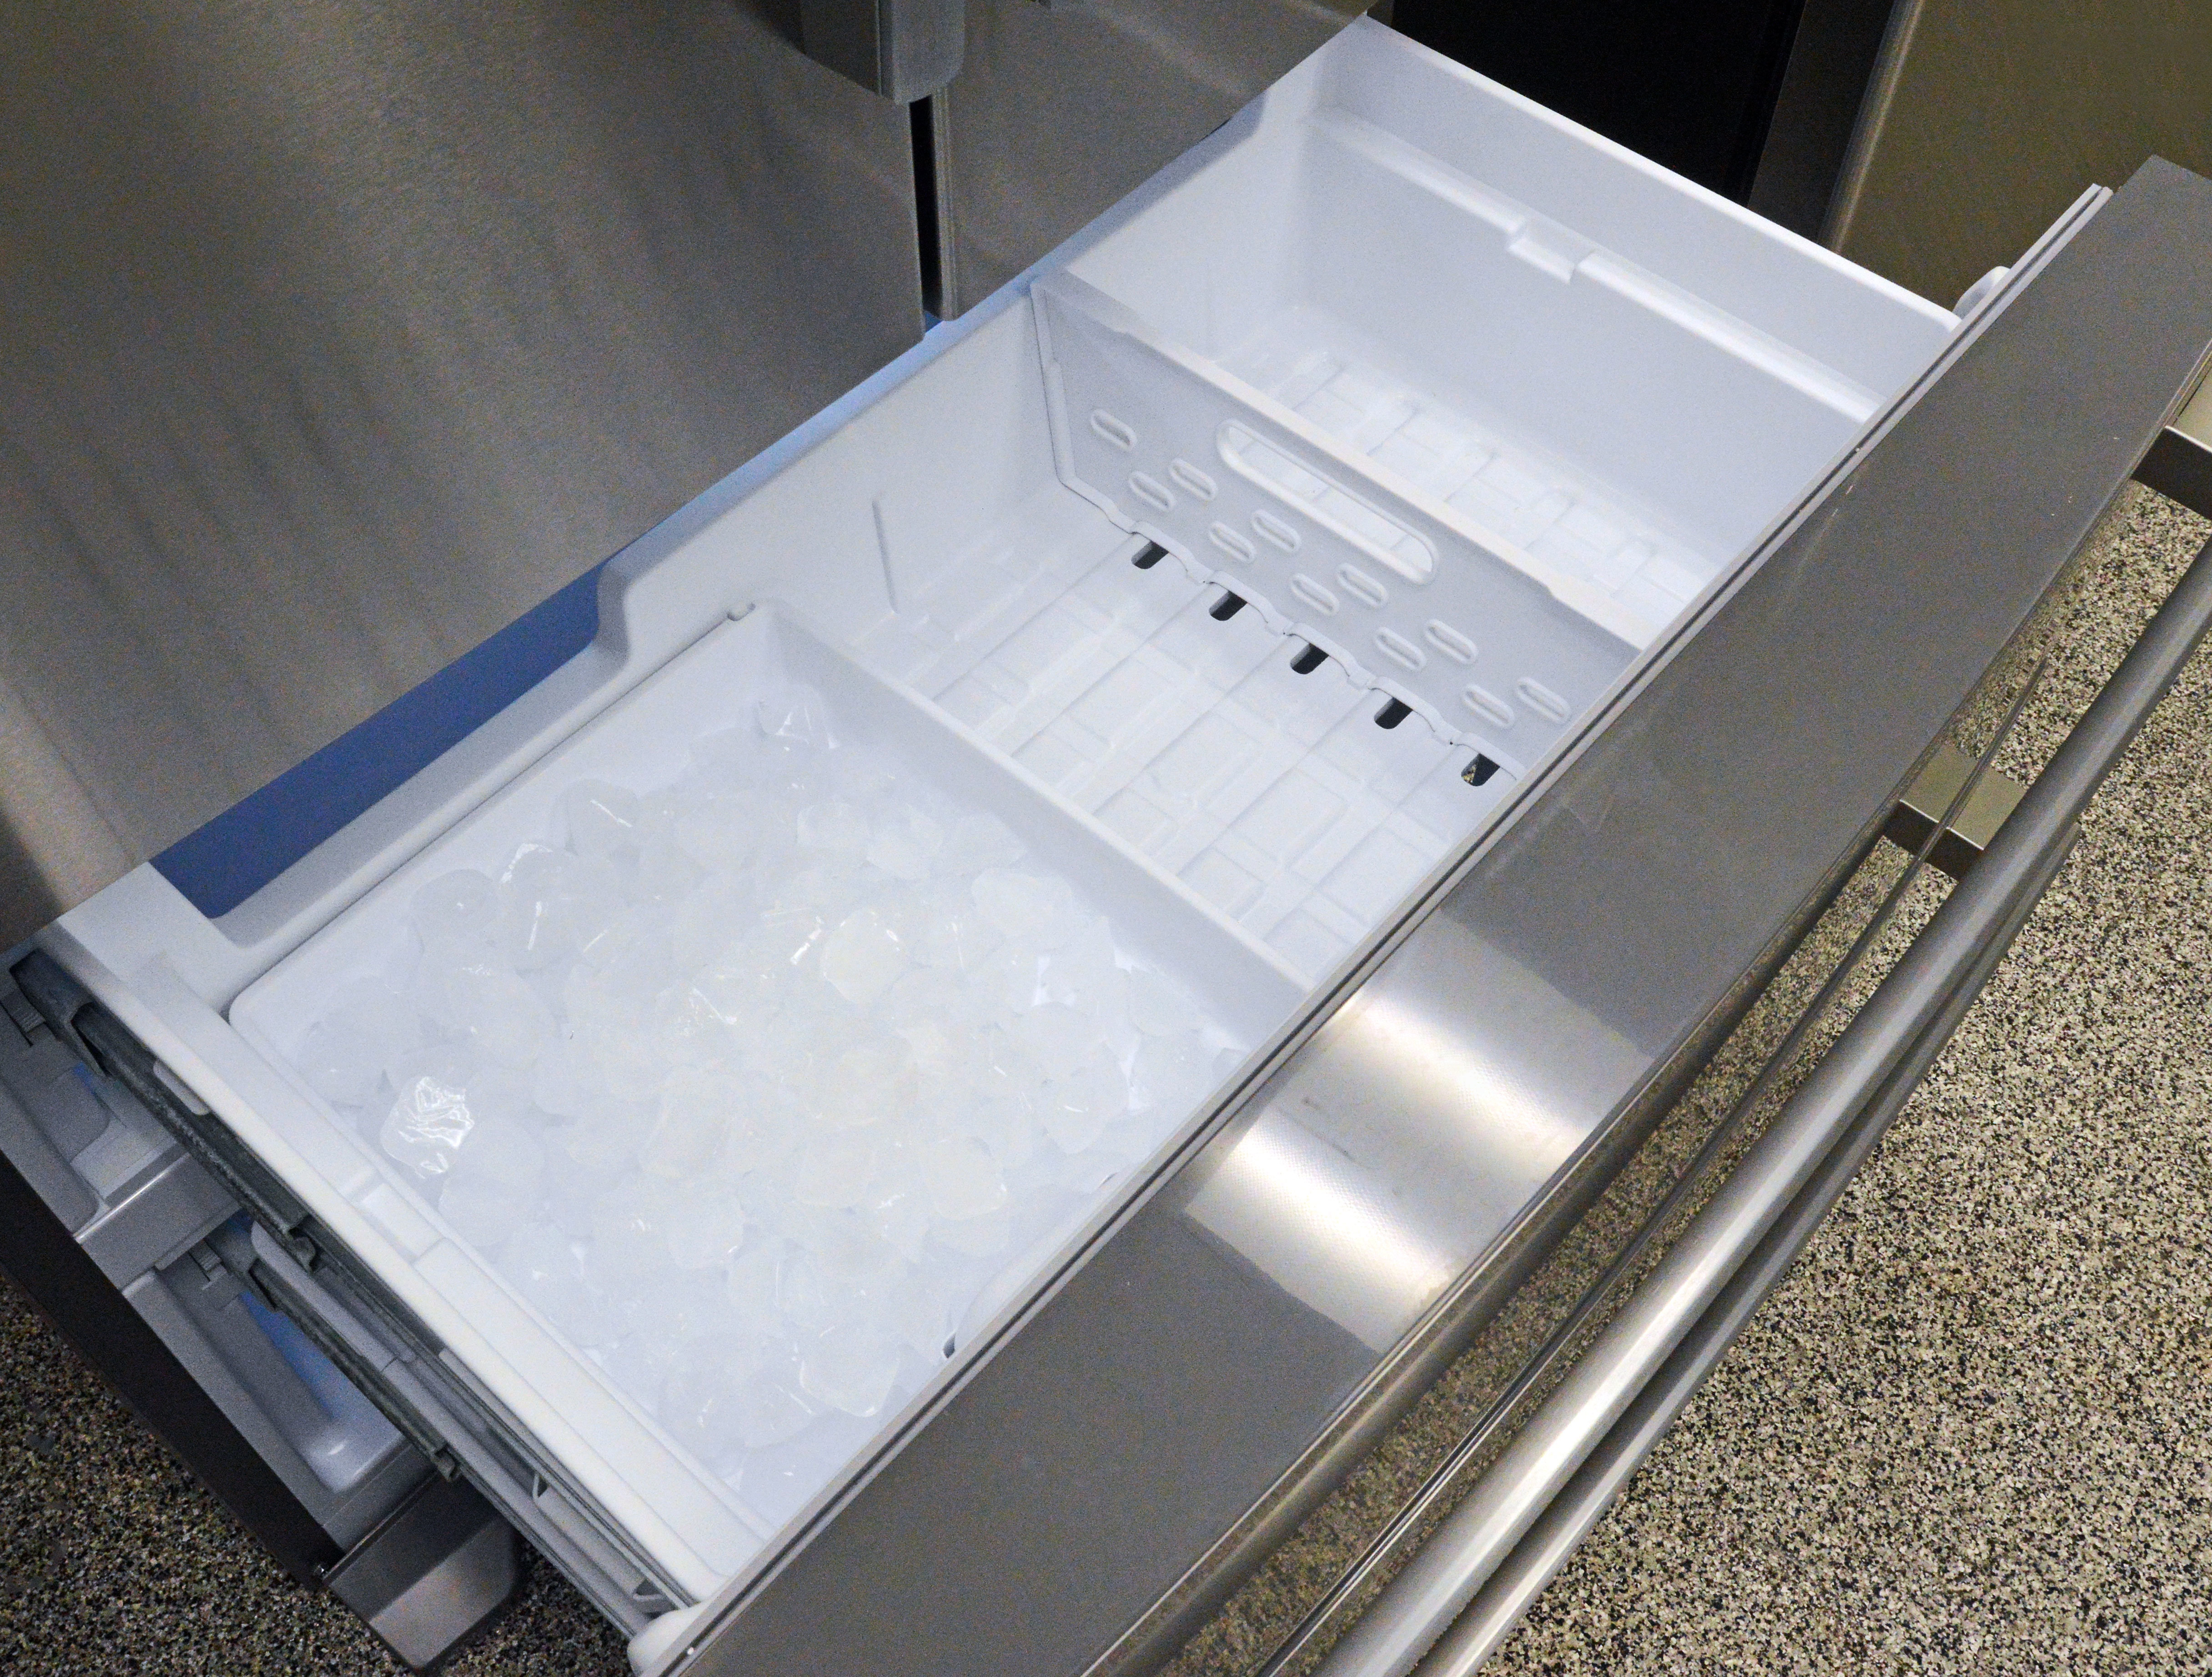 The upper freezer doesn't have a ton of room, especially if you intend to use the ice maker and its wide bucket.